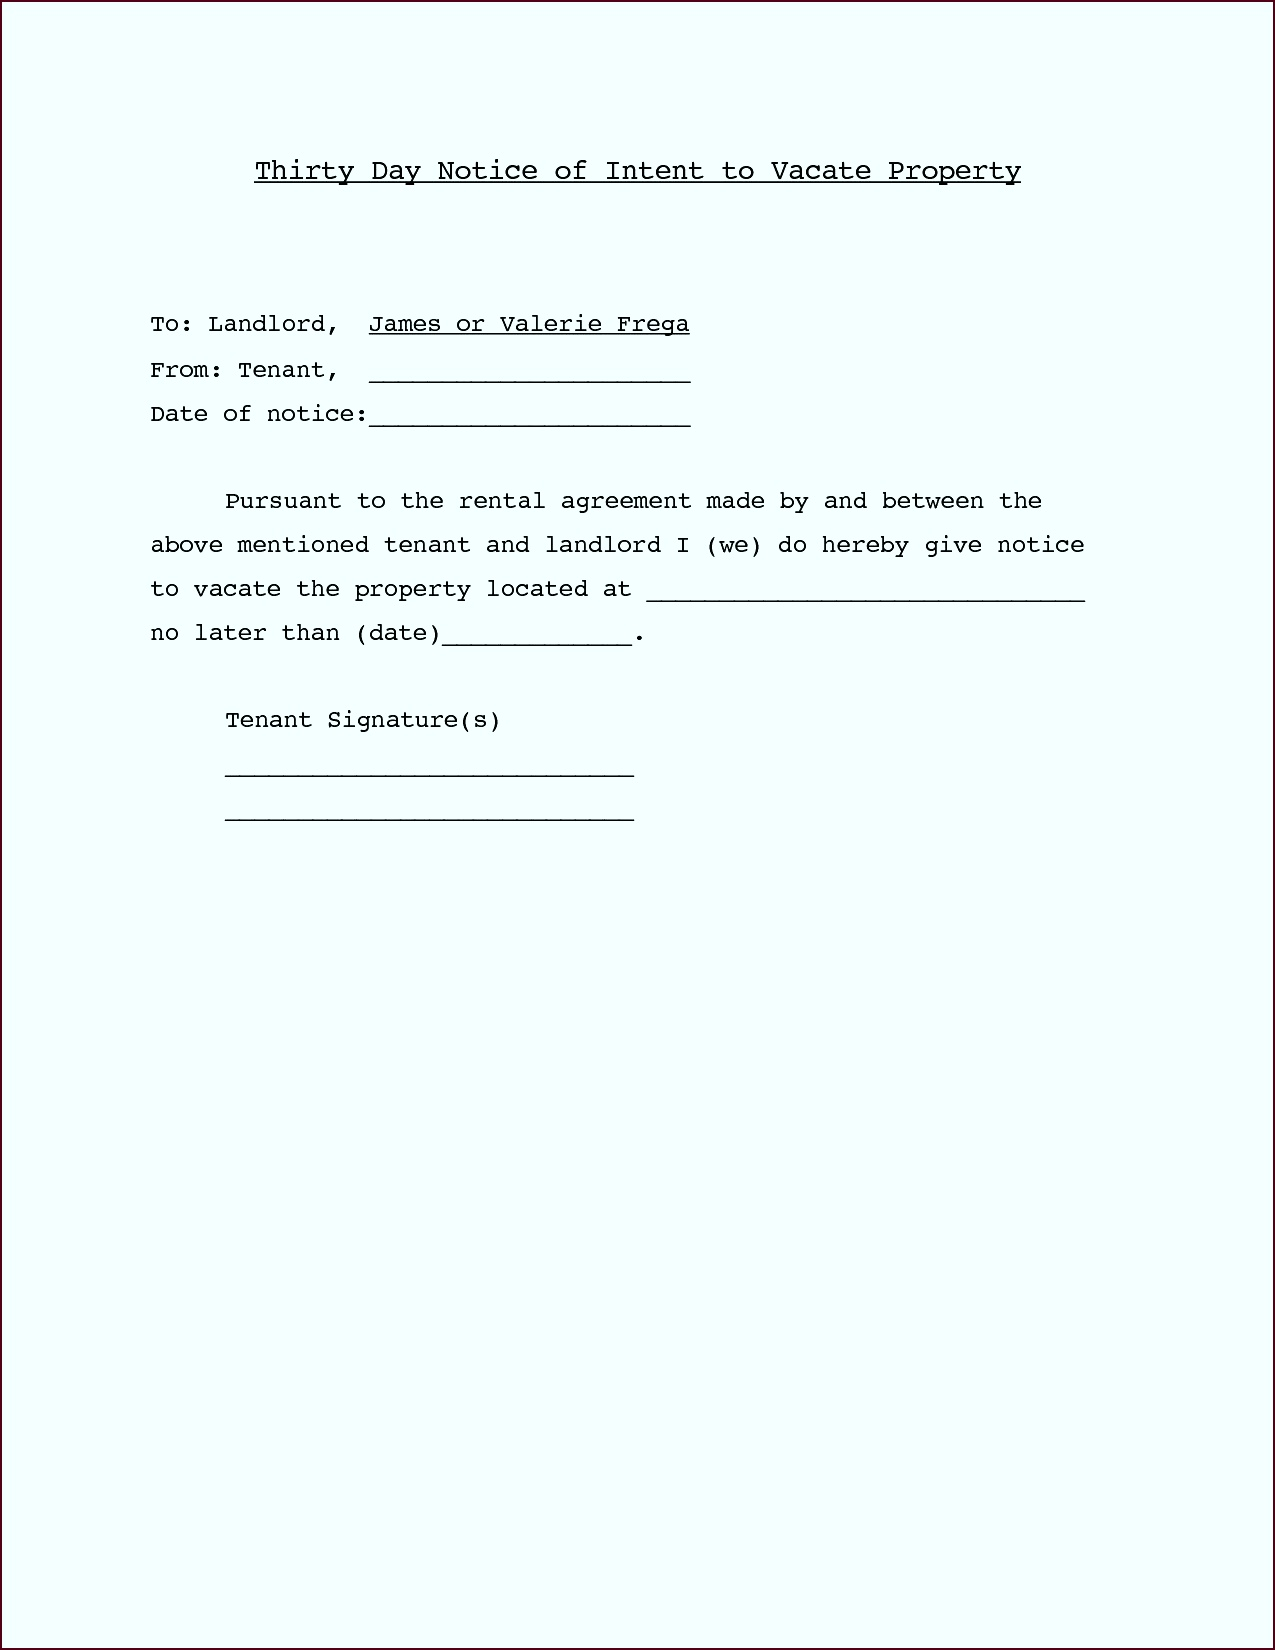 Letter Template For Landlord Notice New Cover Letter For Rental Property Choice Image Cover Letter Sample irate